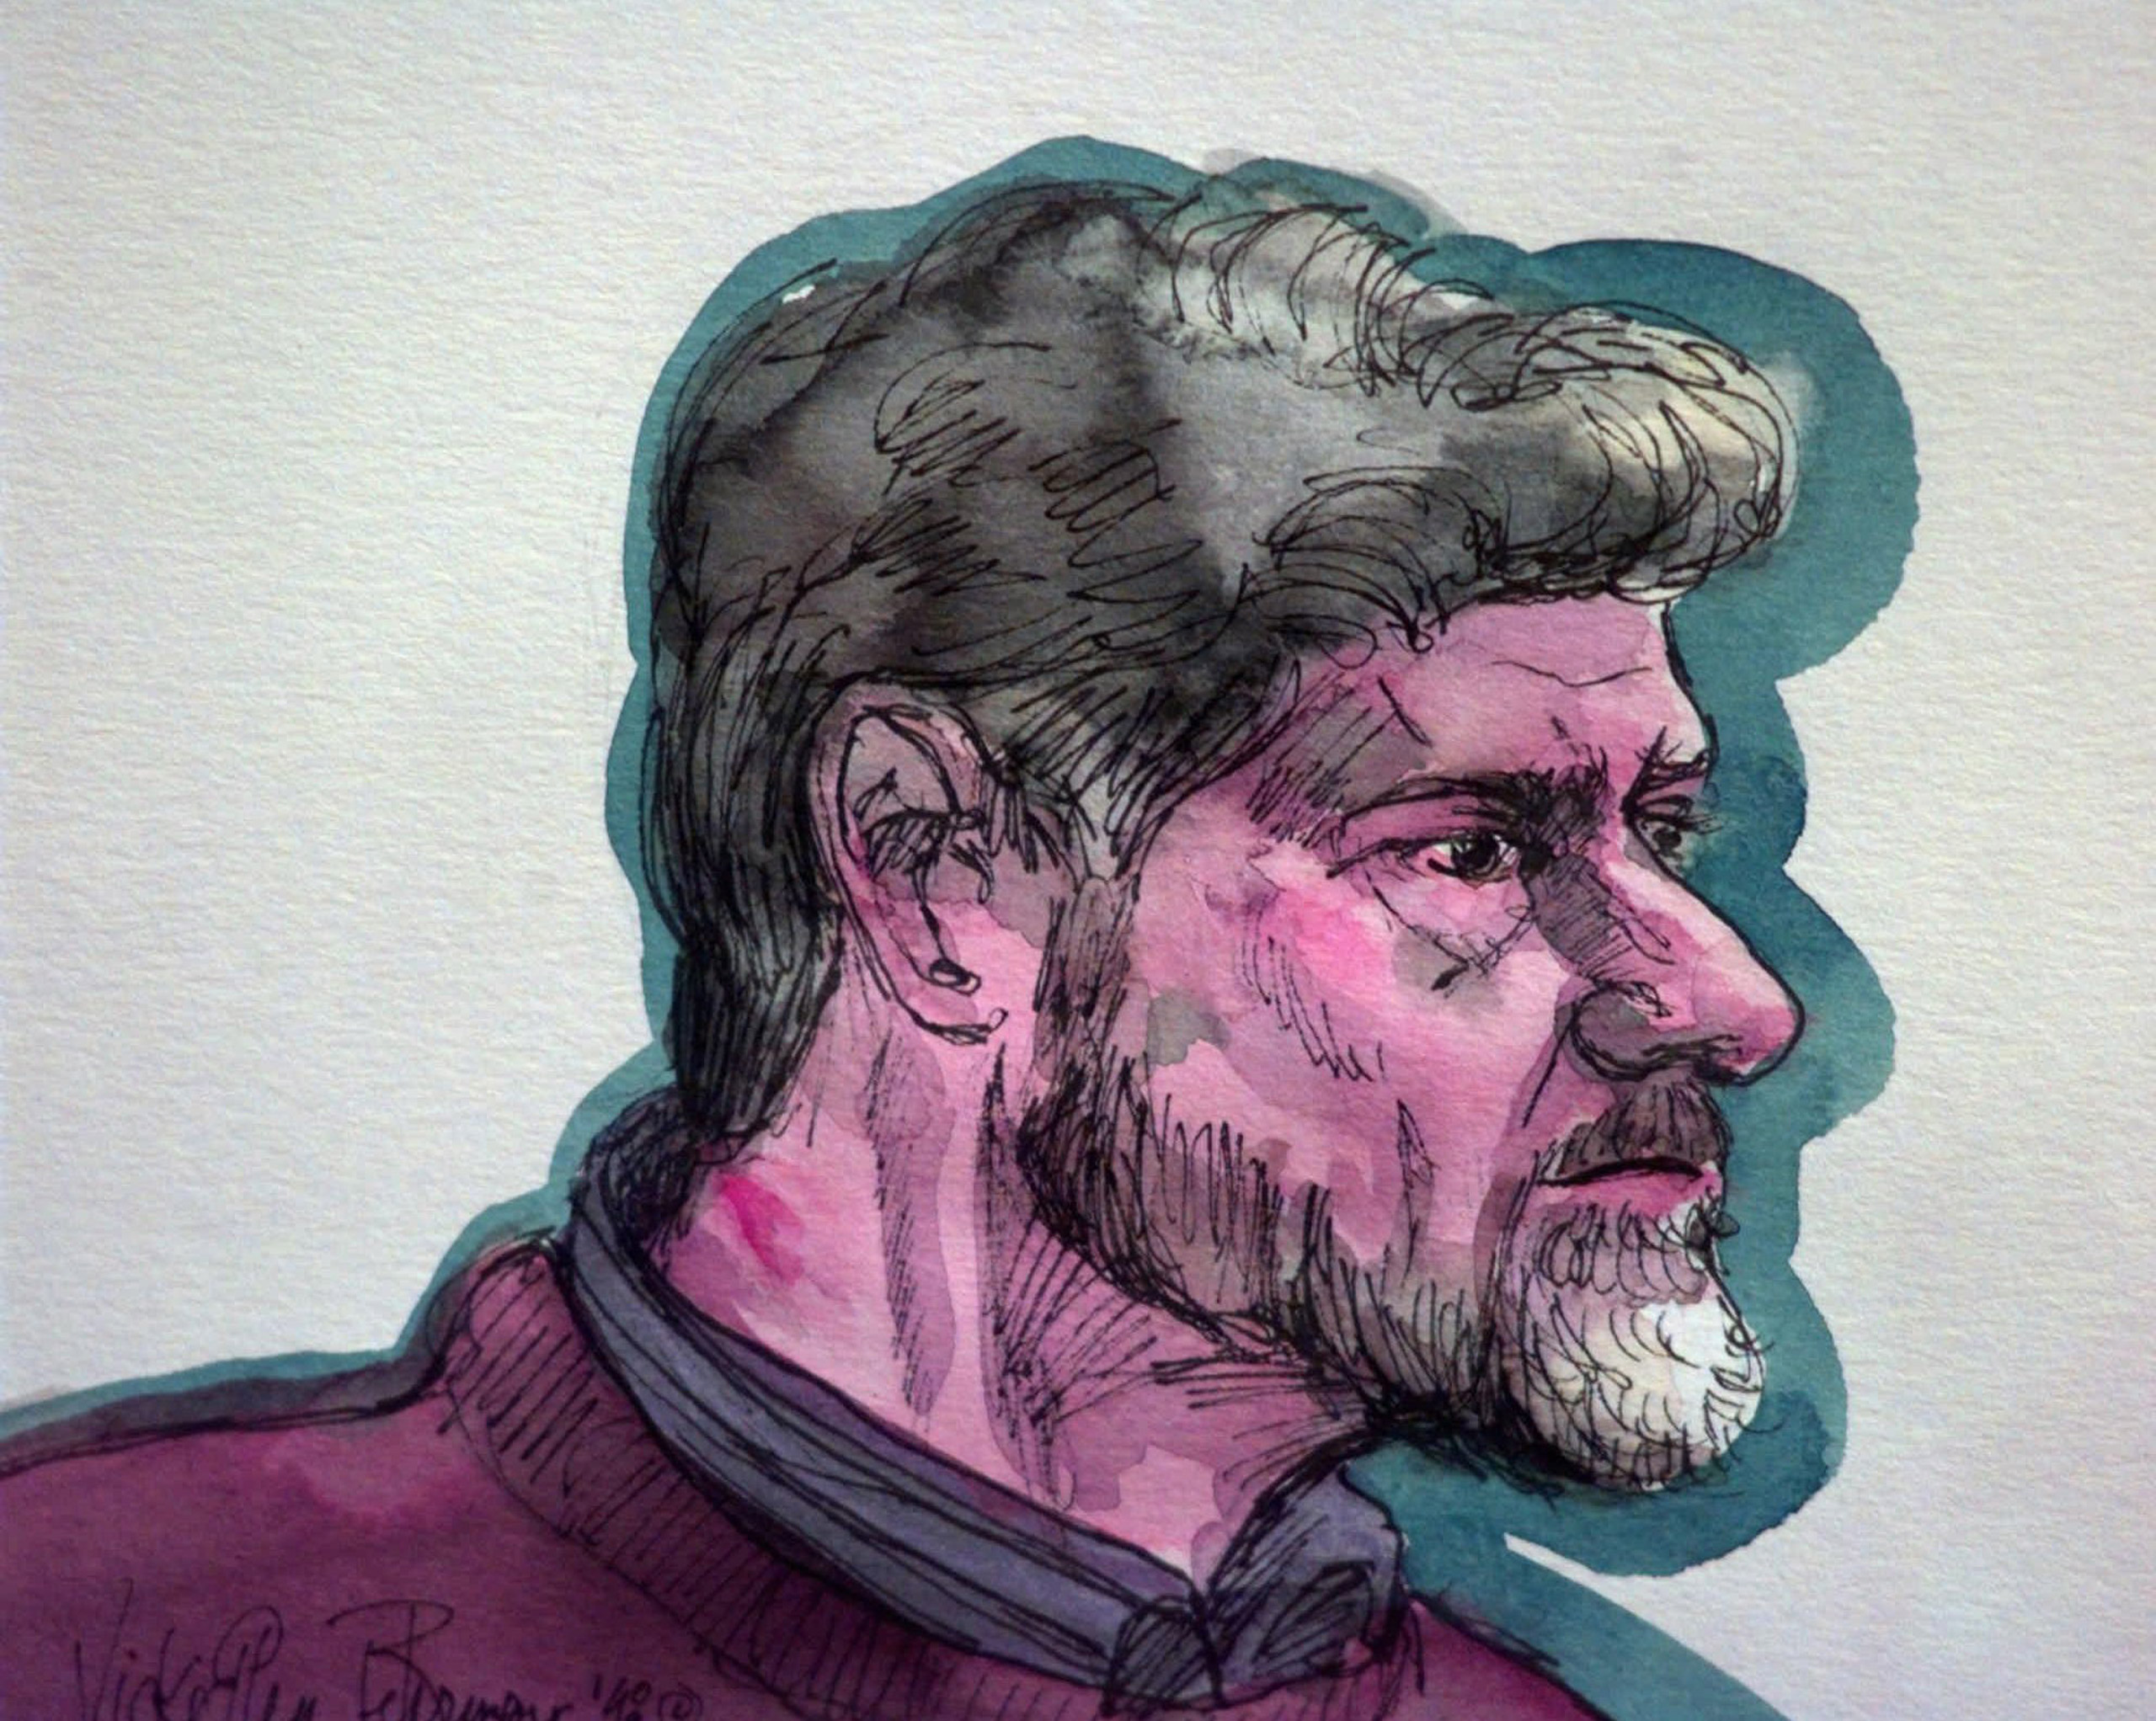 Unabomber Ted Kaczynski appears in Federal Court with a red mark on his neck in Sacramento, Calif., on Jan. 9, 1998. Authorities said Kaczynski attempted to hang himself in his jail cell the day before. Kaczynski was sentenced to eight consecutive life sentences.